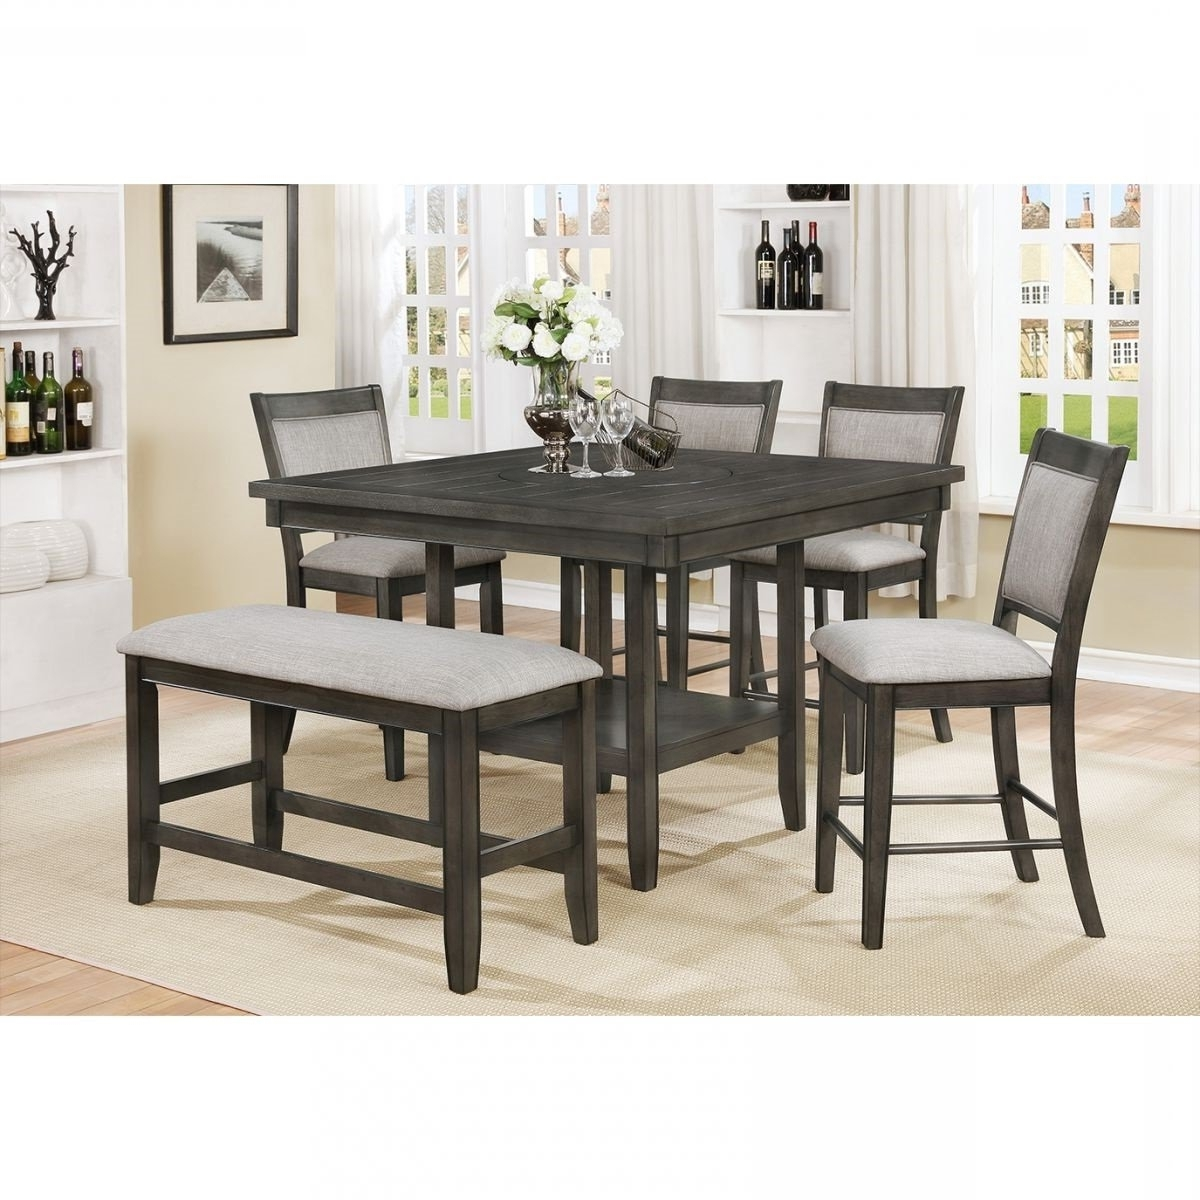 Most Popular Fulton Gray 6 Pc Counter Height Dining Room (View 9 of 25)